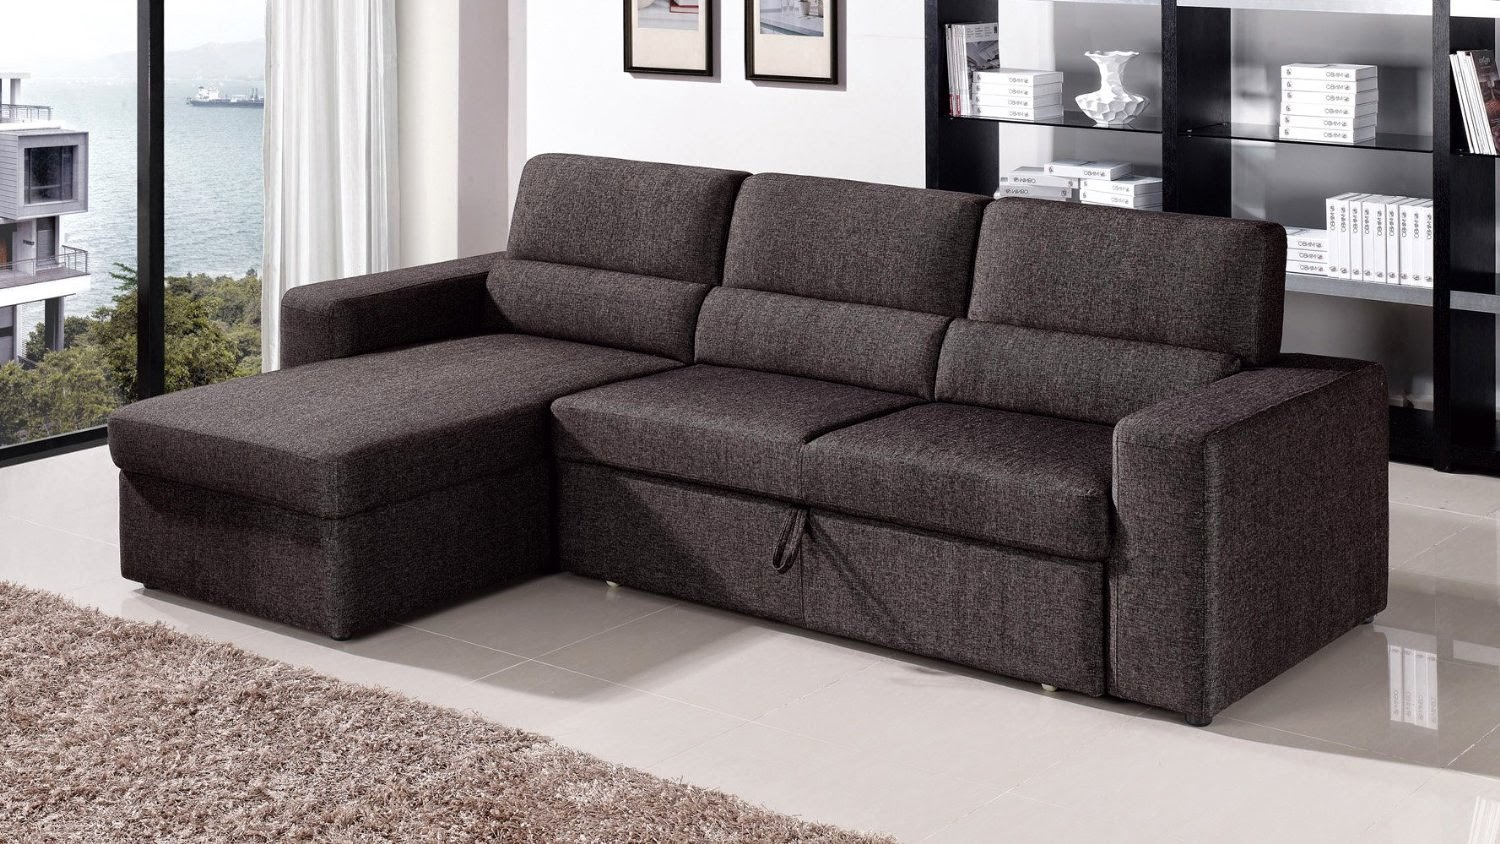 Sectional Sofas With Pull Out Bed And Recliner Slipcovers Couch